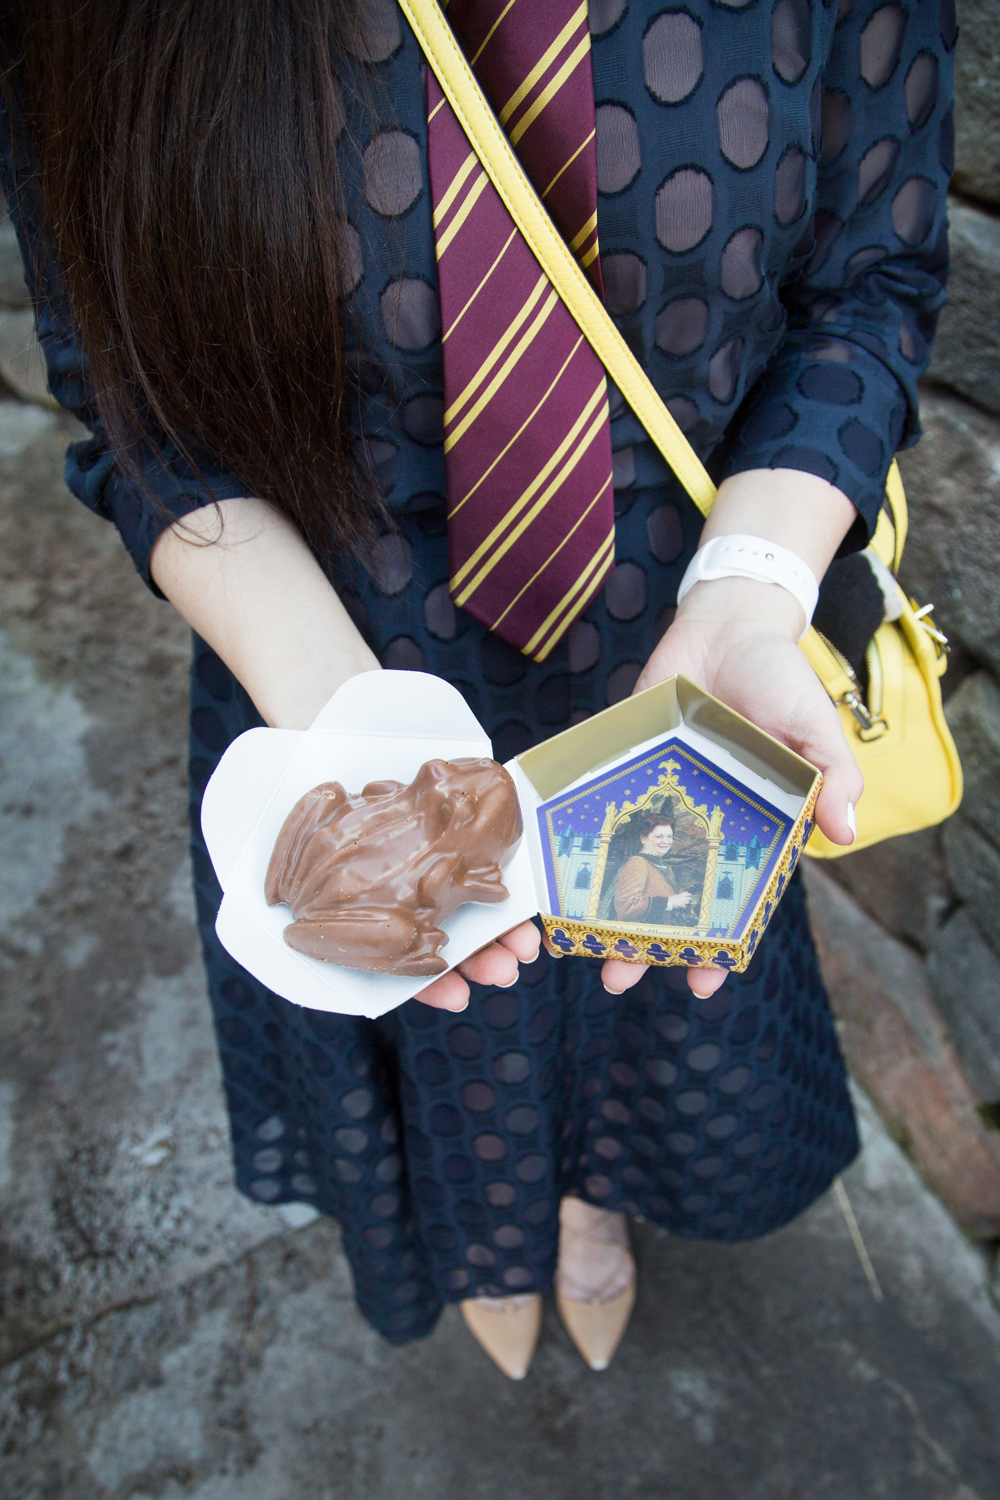 Universal Studios Orlando Wizarding World of Harry Potter Chocolate Frog